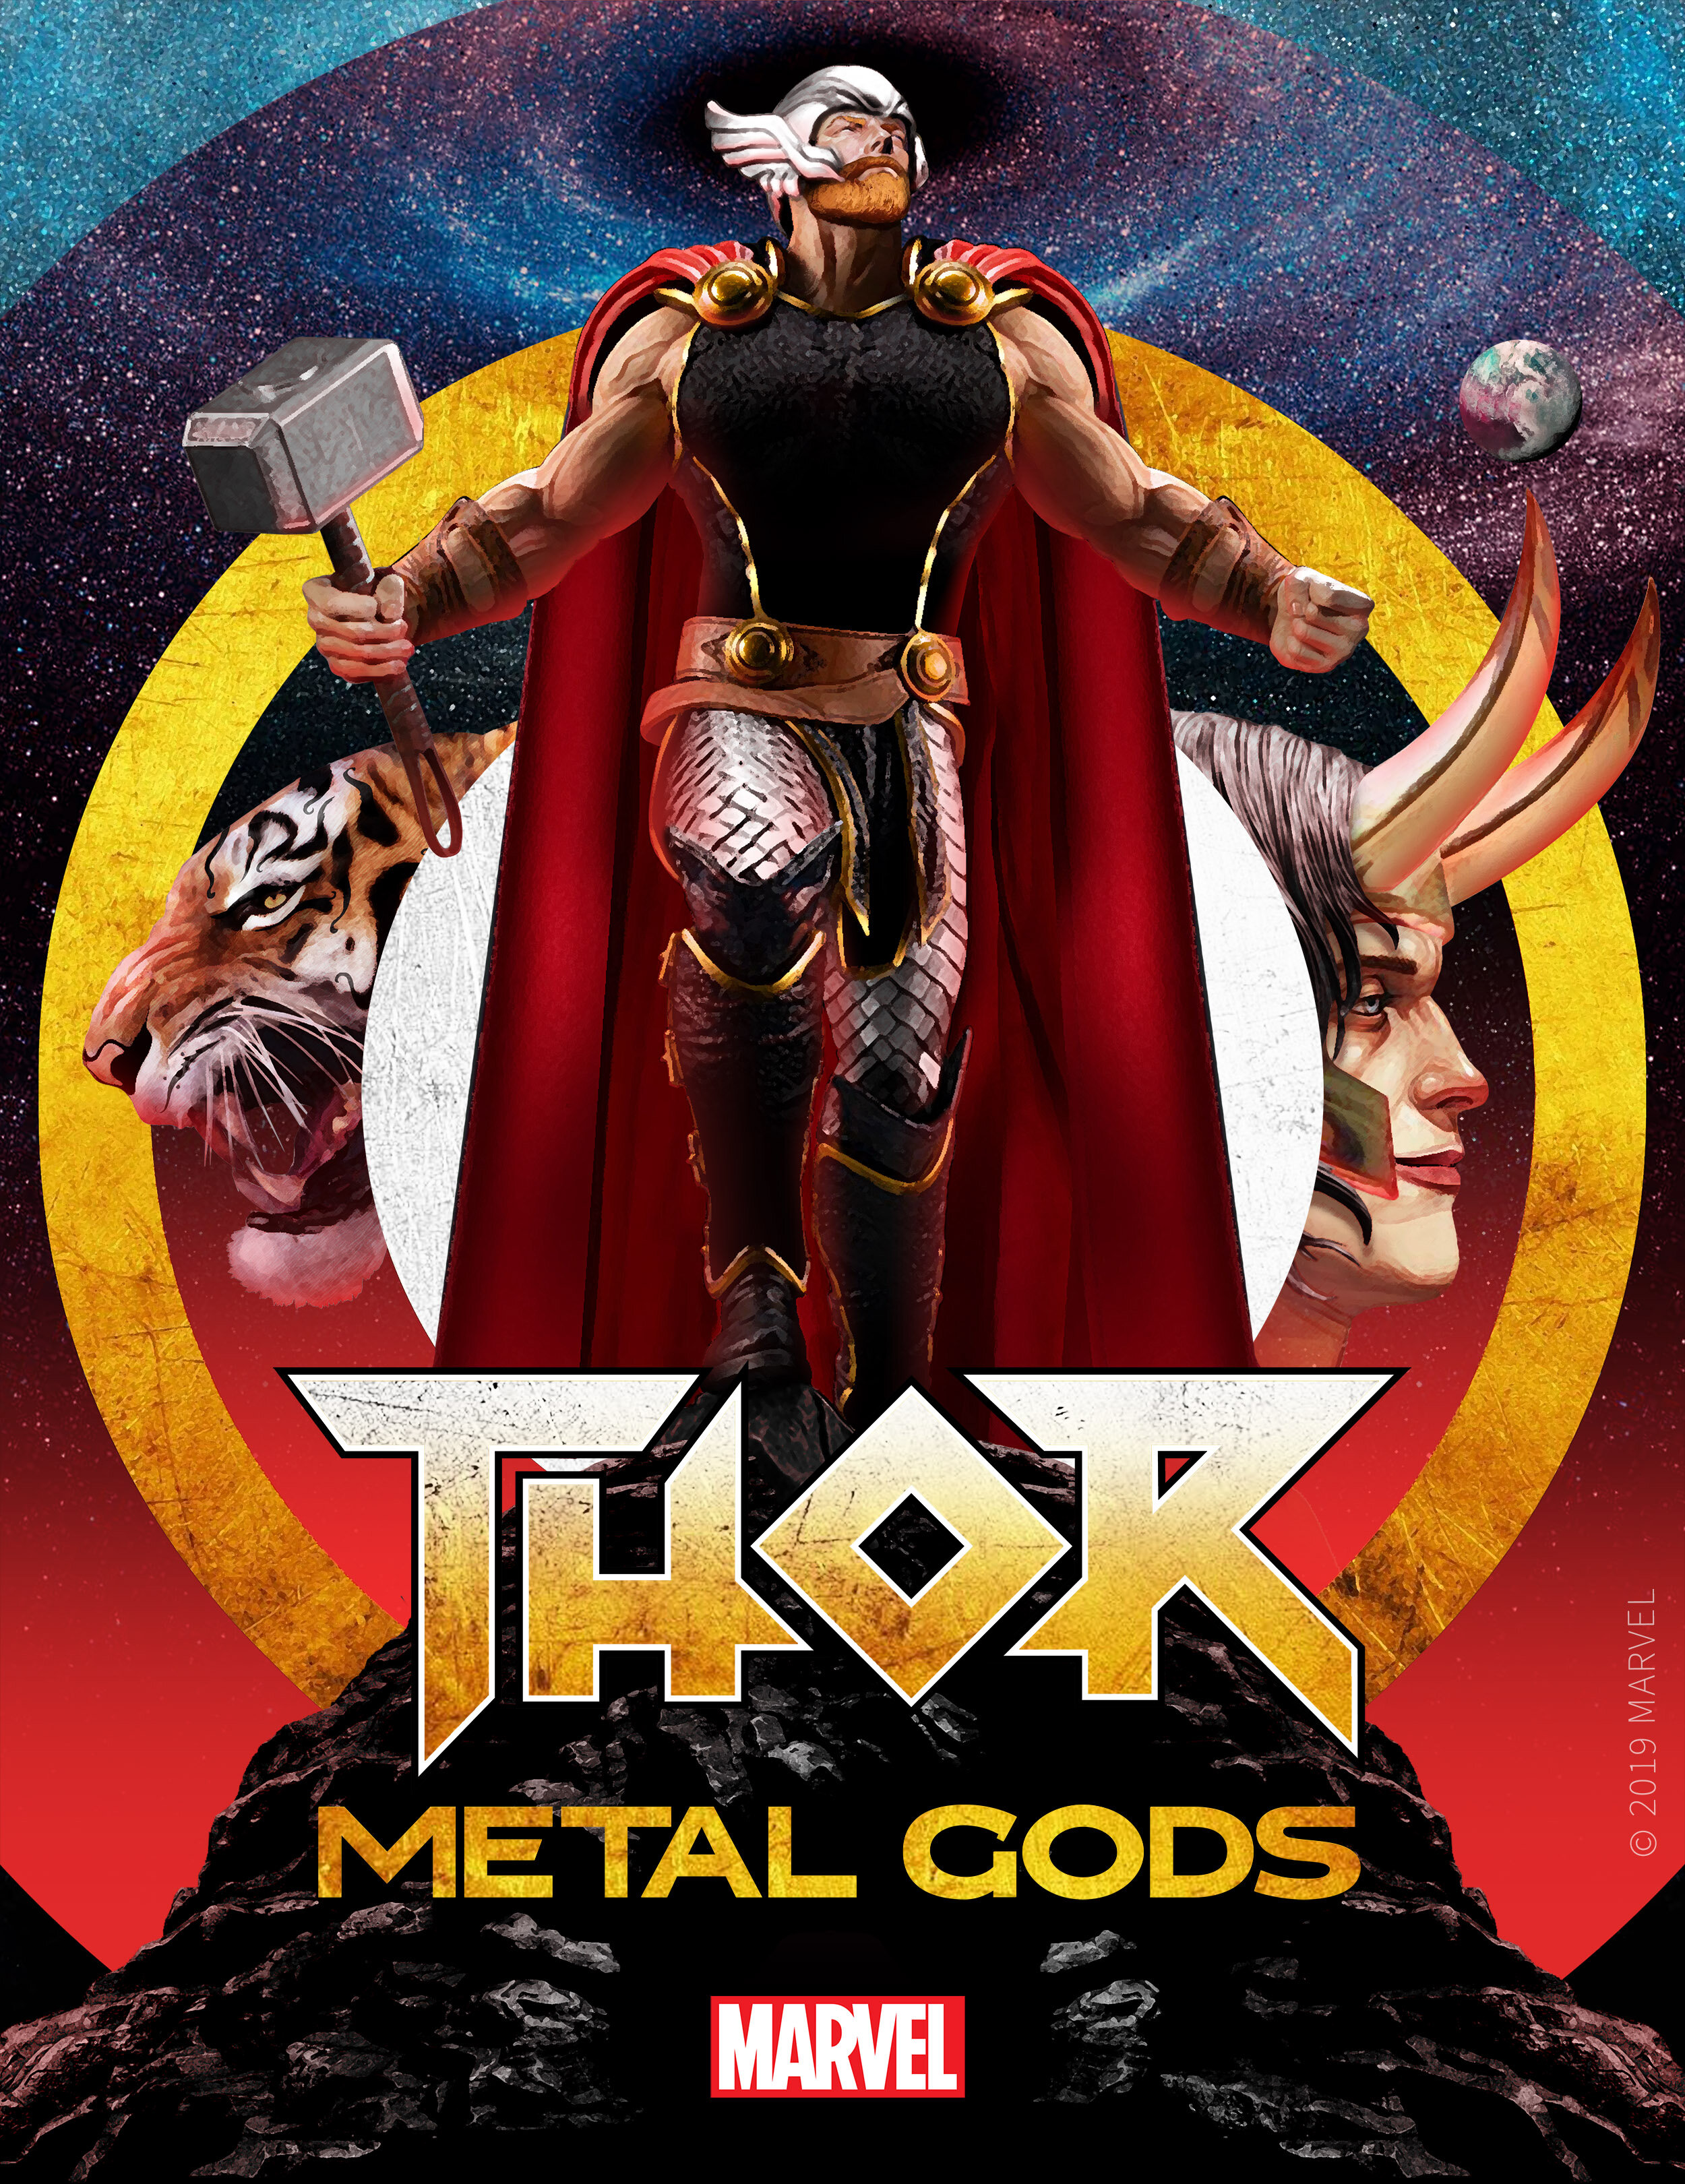 THOR: METAL GODS - Thor: Metal Gods, an 8-part audio and prose series written by Brian Keene, Aaron Stewart-Ahn, Jay Edidin, and Yoon Ha Lee launches in December and is available for pre-order.